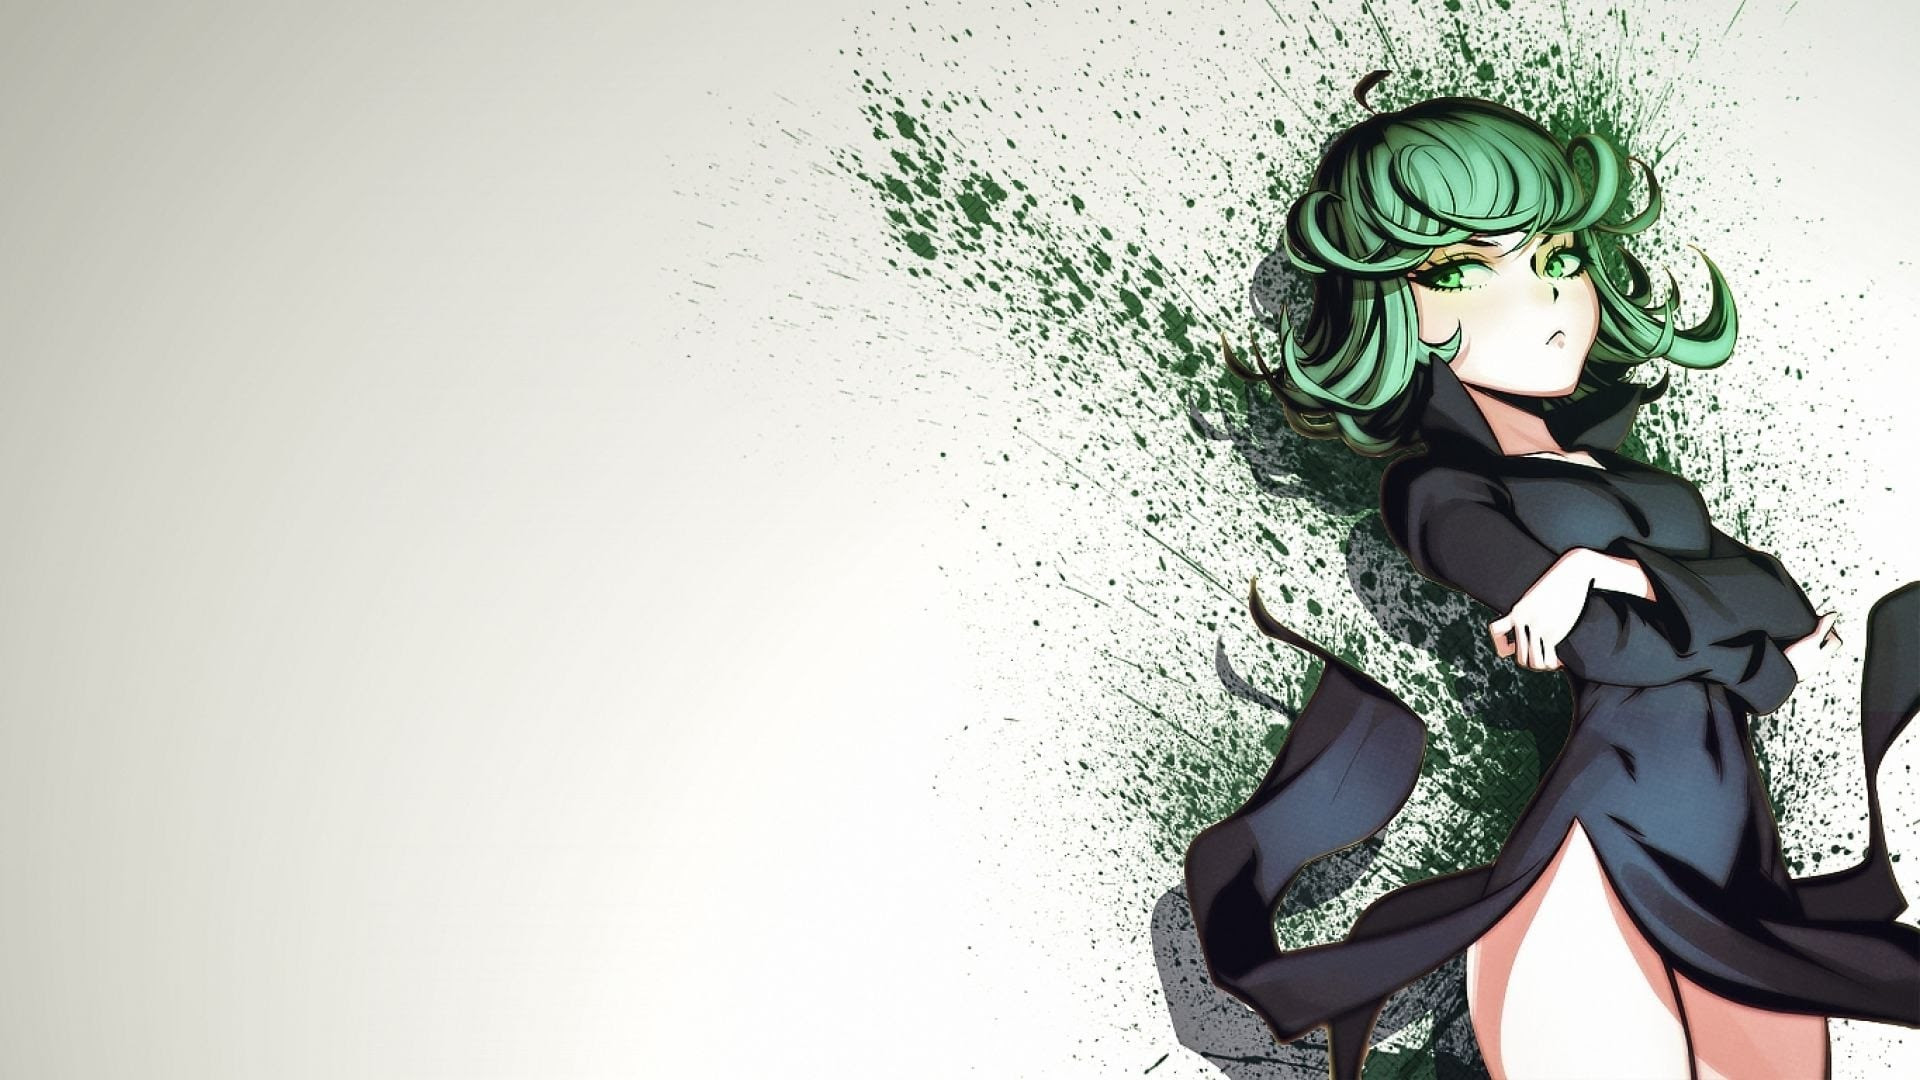 Tatsumaki One Punch Man High Quality Walls